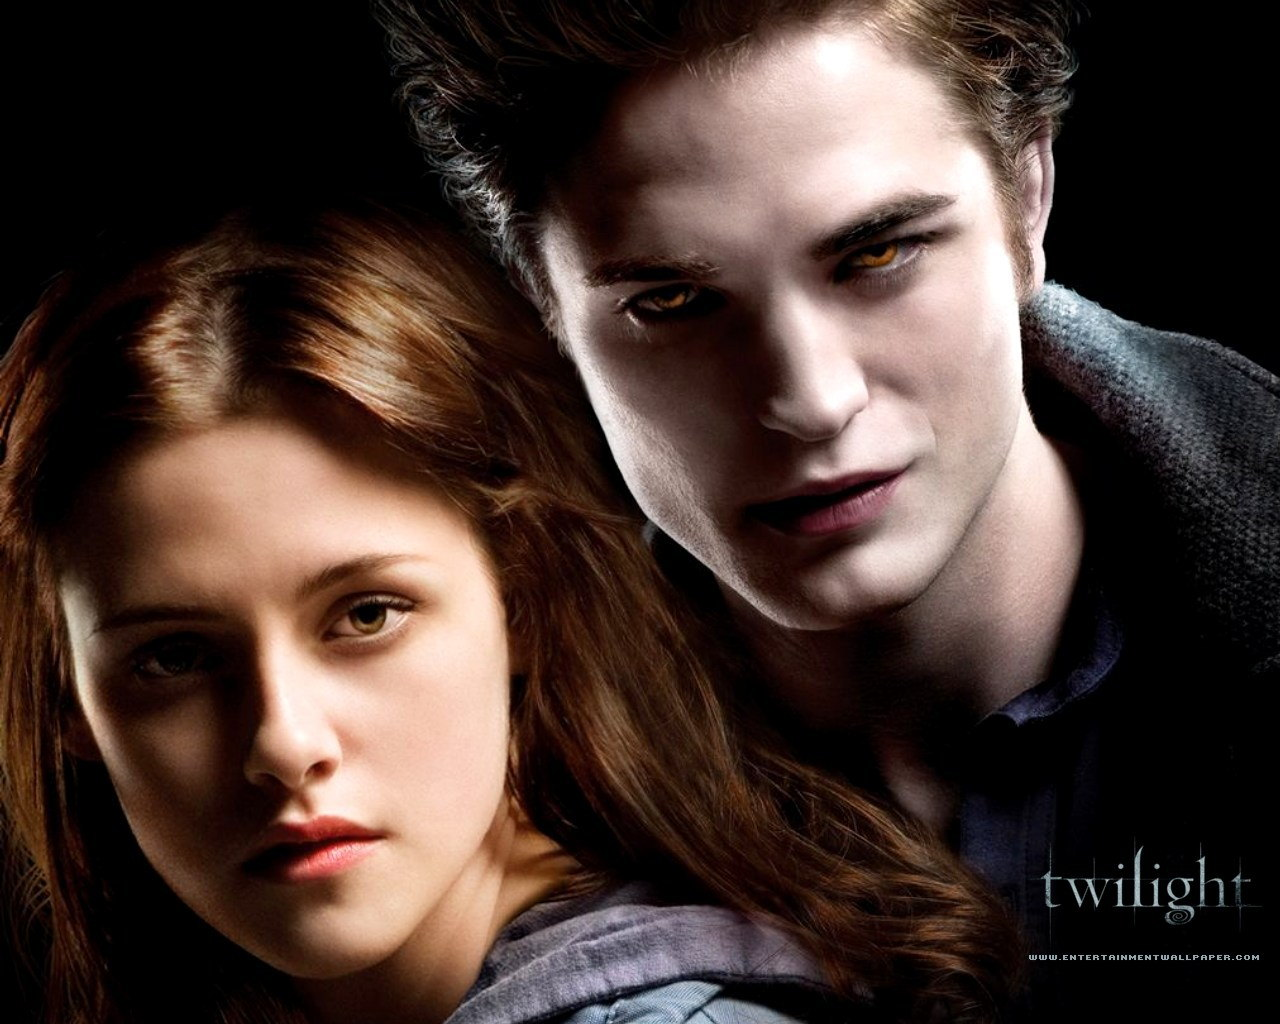 edward bell twilight - photo #34